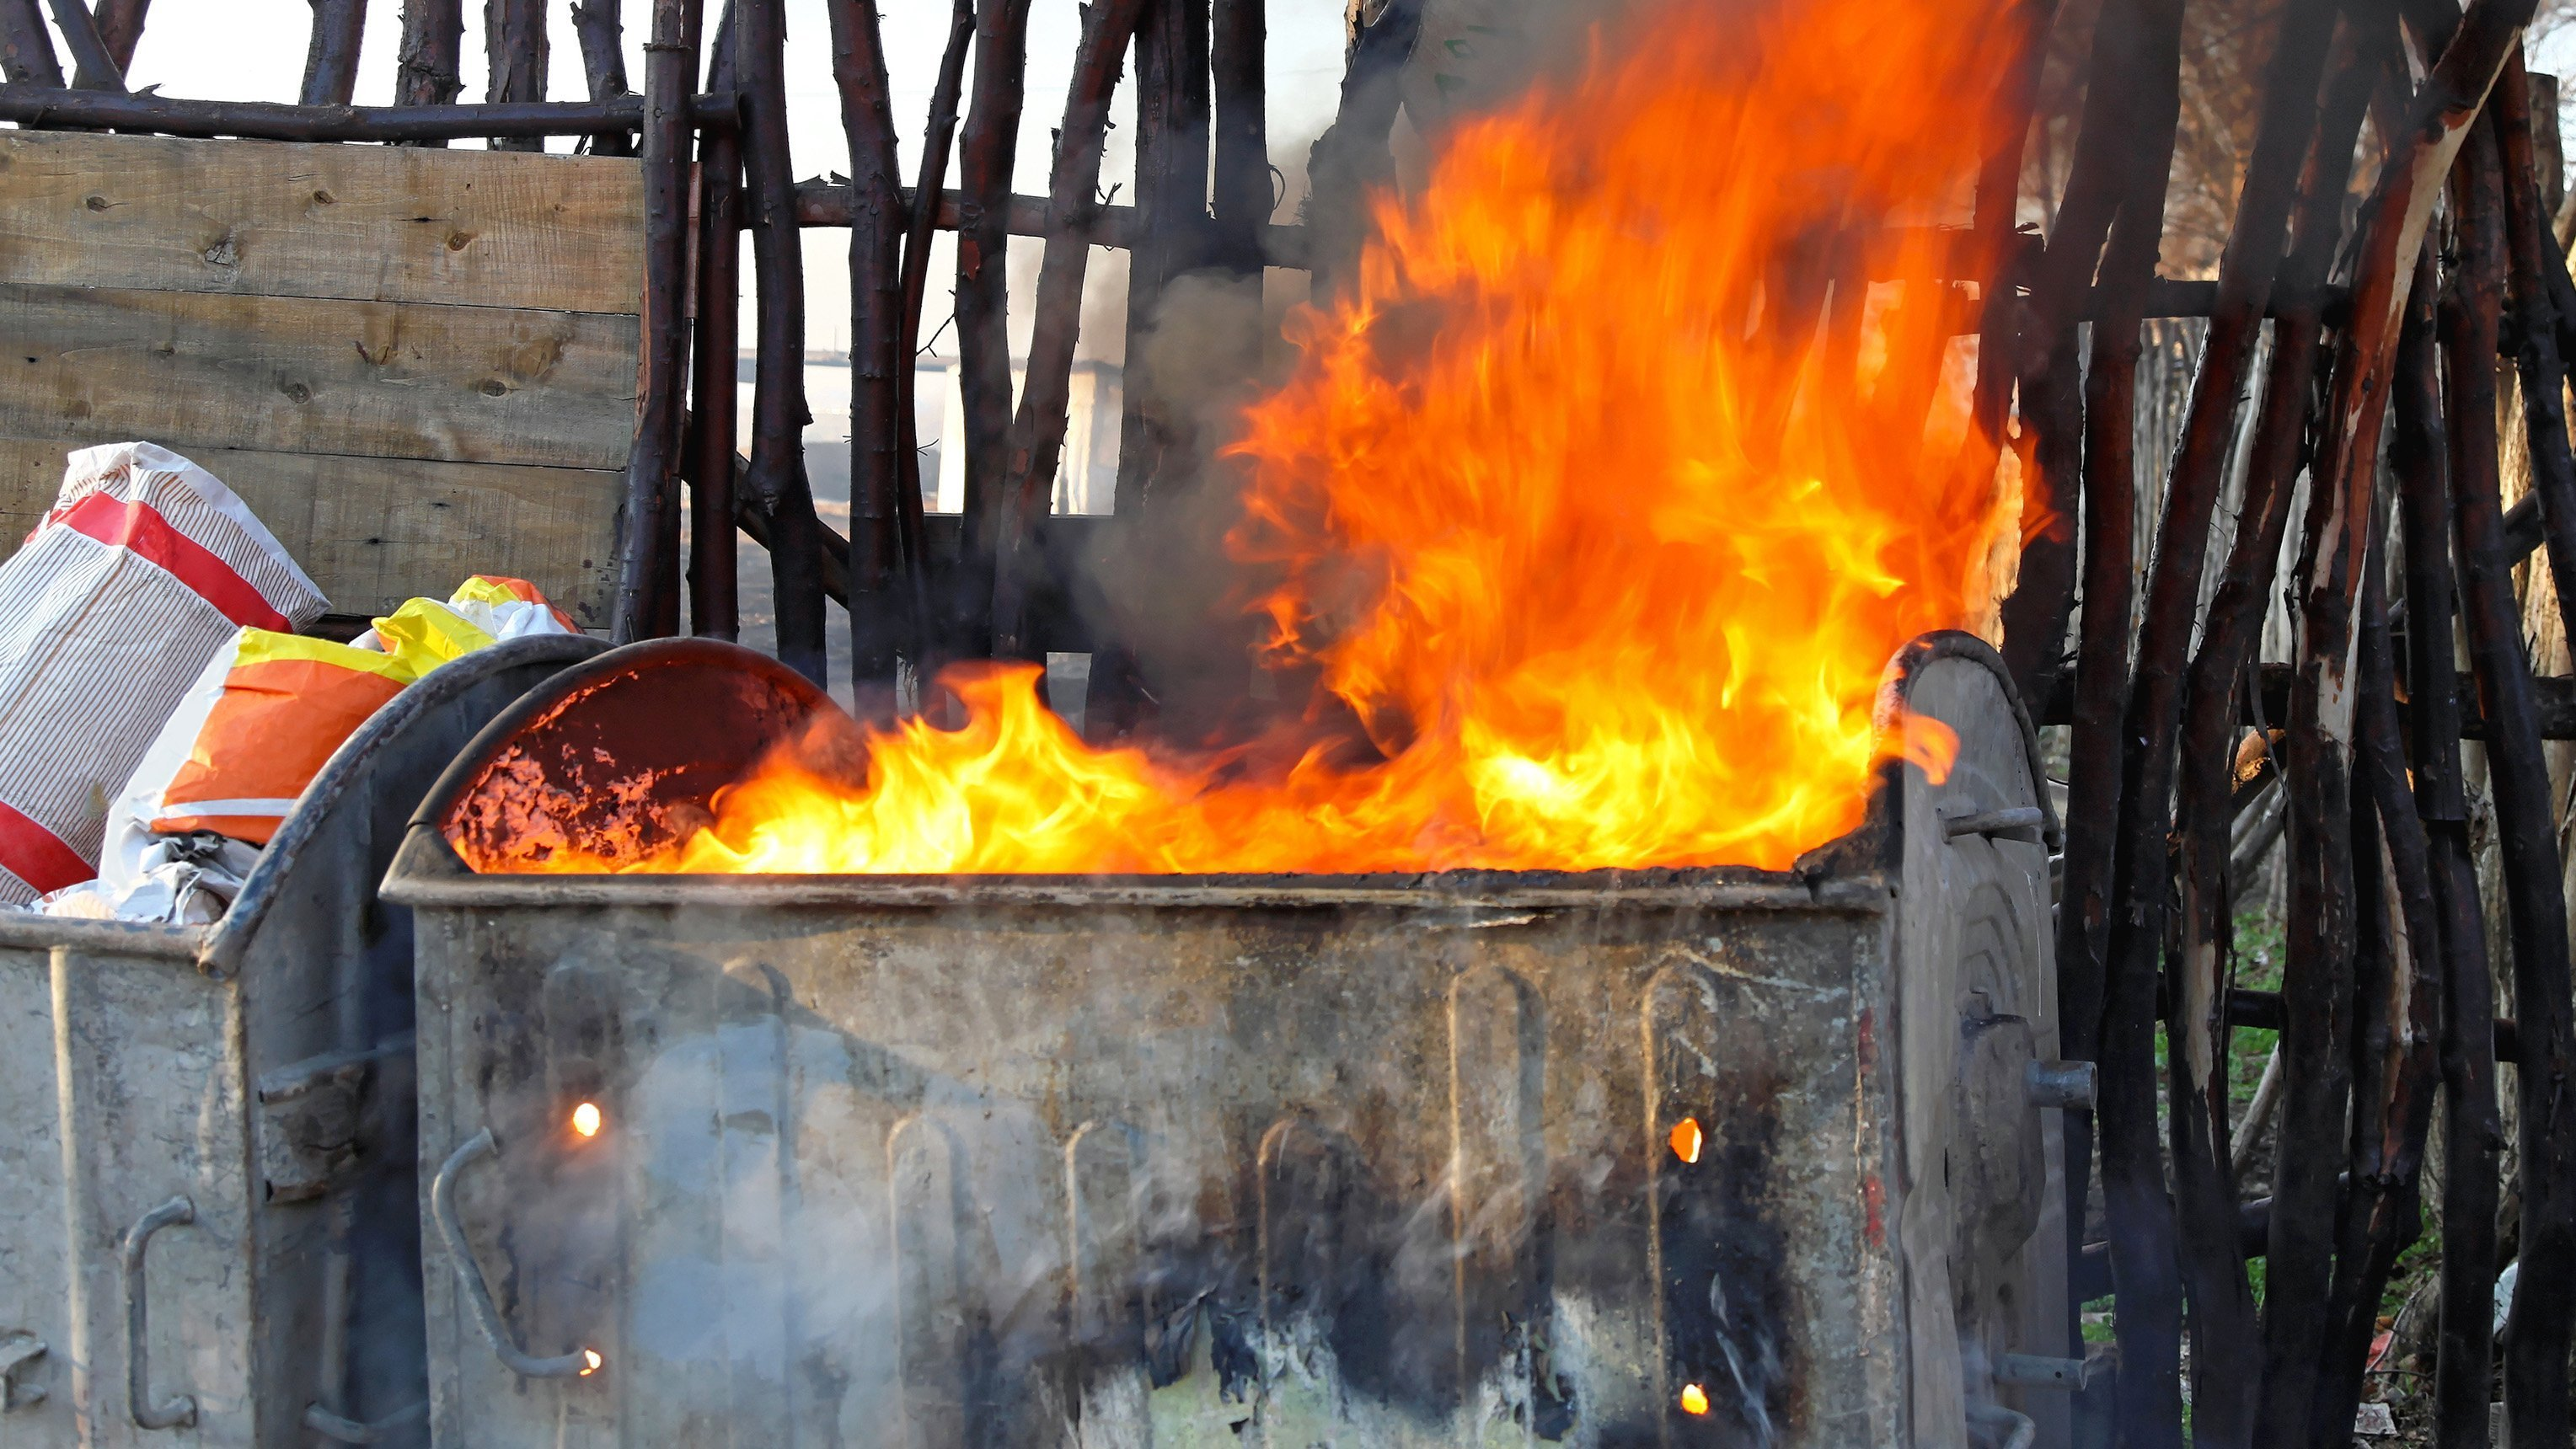 """The new official definition of dumpster fire is """"an utterly calamitous or mismanaged situation or occurrence.""""   CREDIT: Baloncici/iStockphoto/Getty Images"""